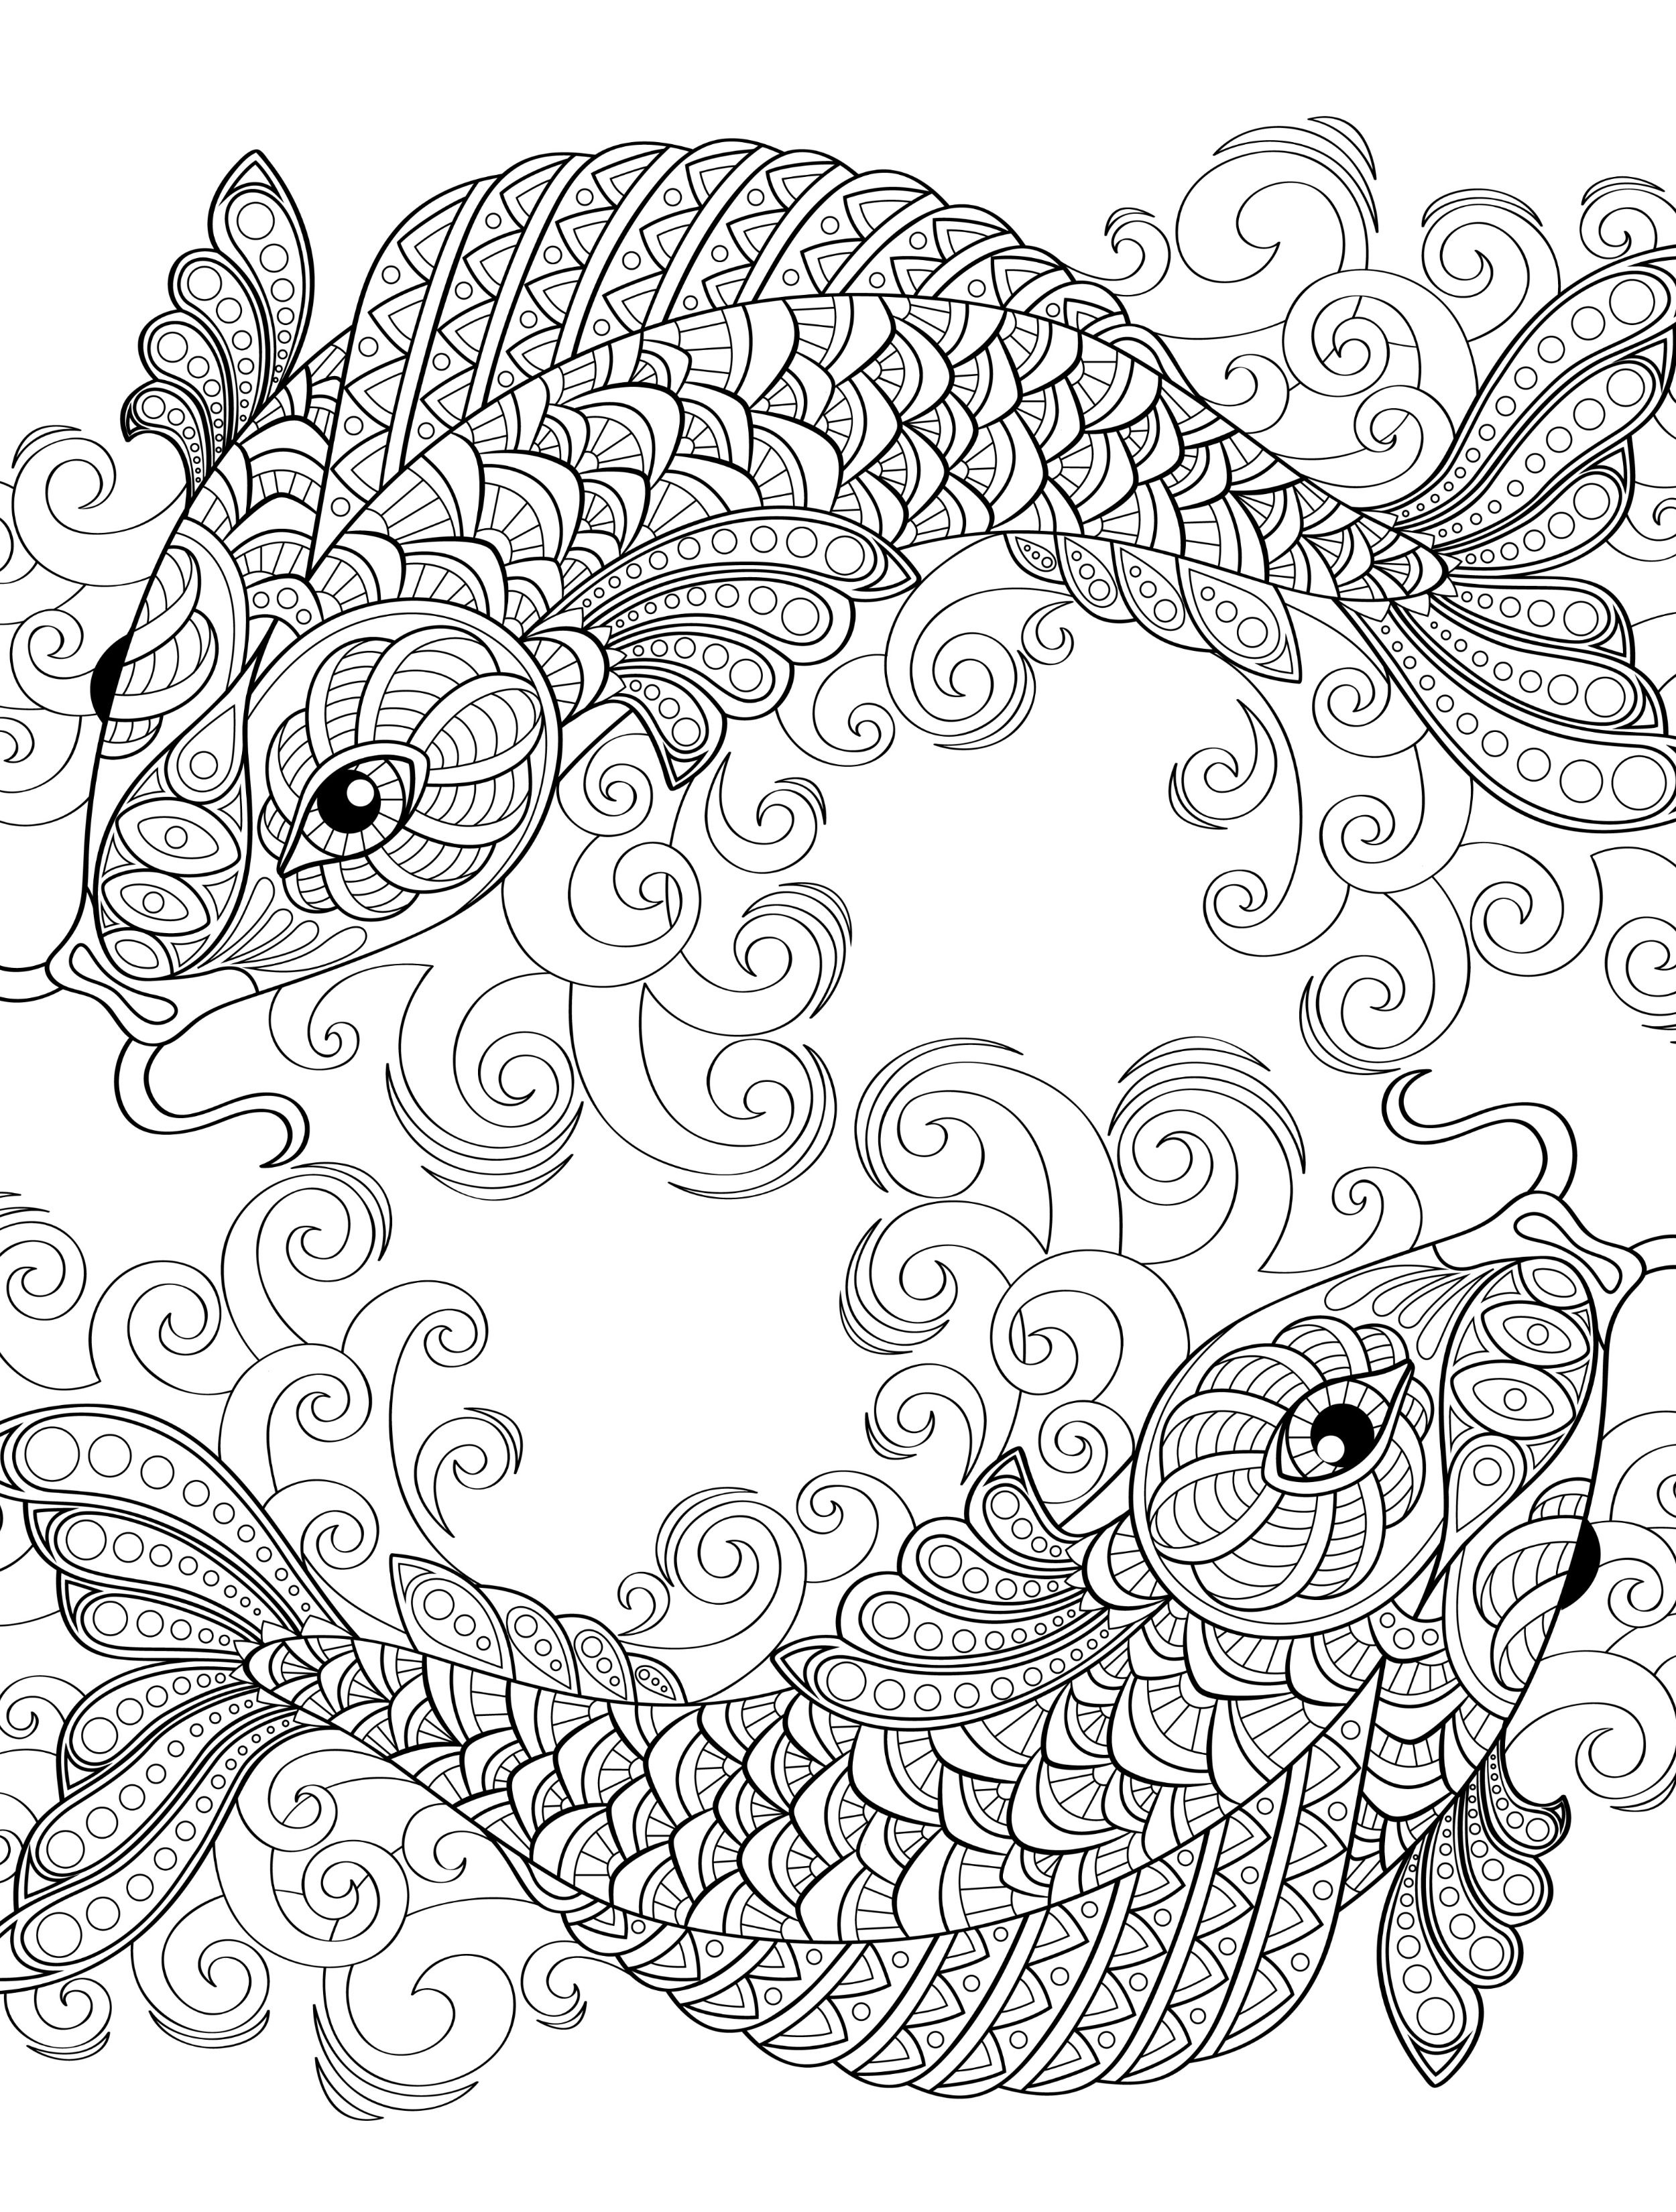 aduly coloring pages - photo#45